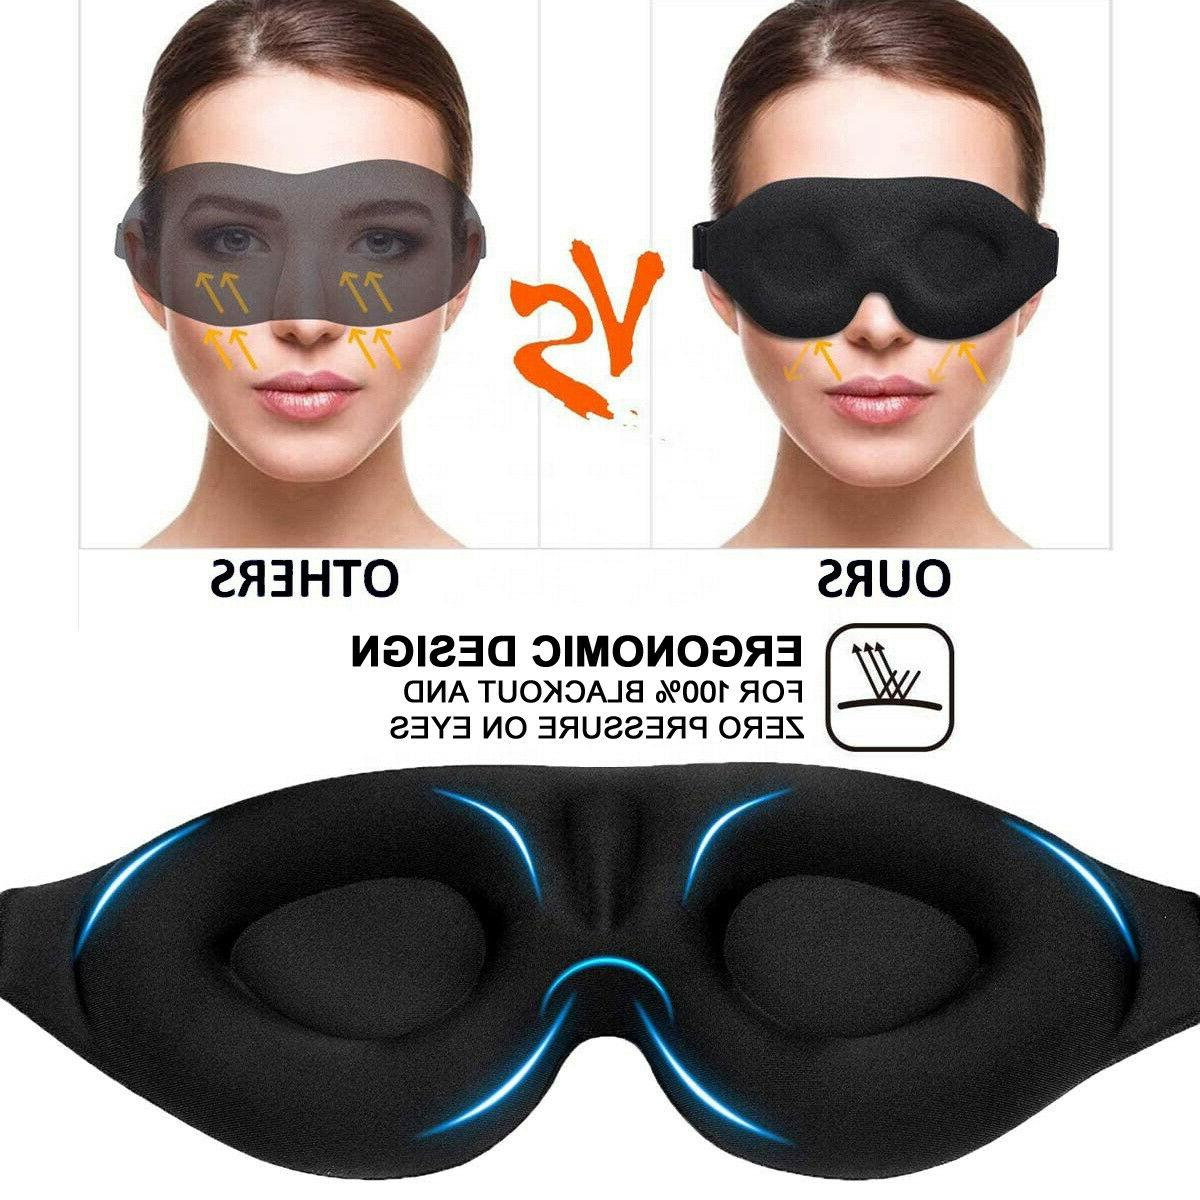 Sleep Mask For Men And For Sleeping Accessories